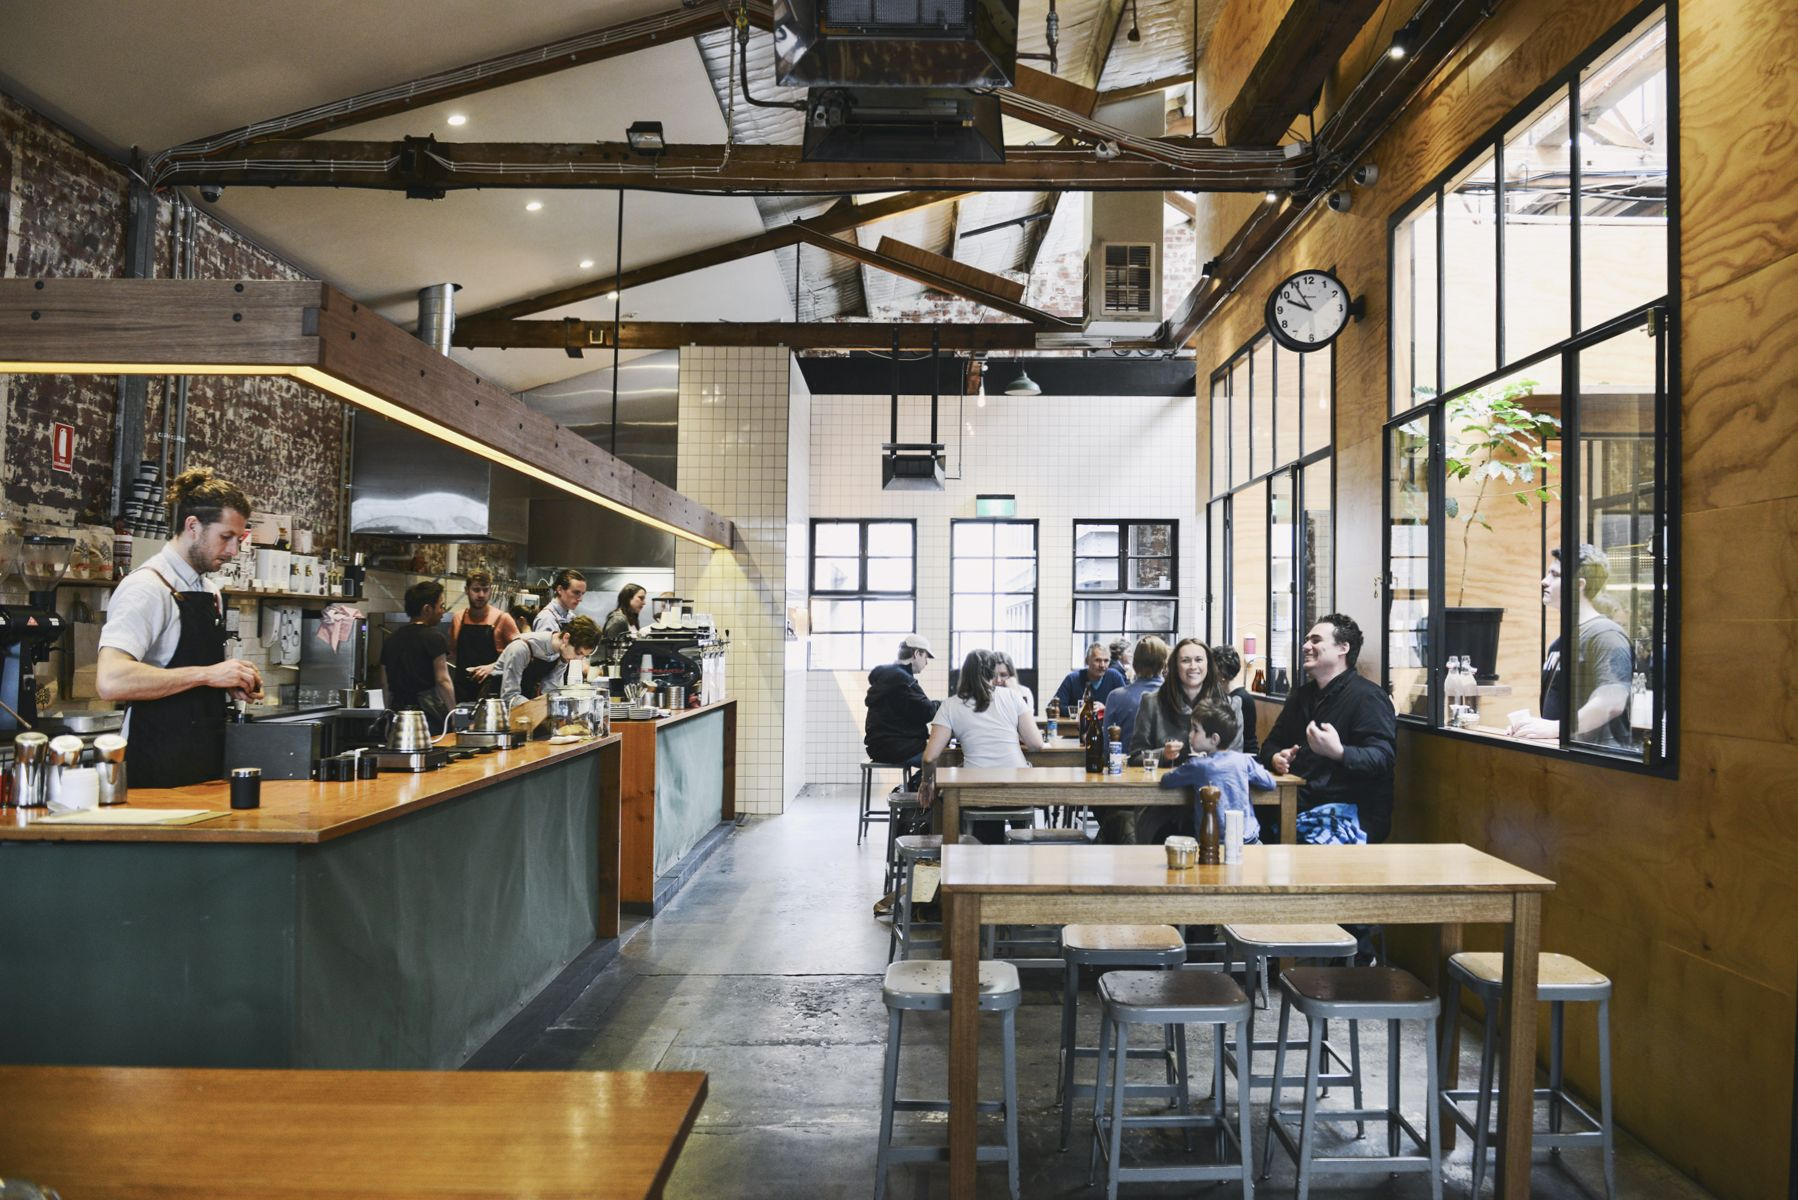 Cotta Cafe Melbourn : Don t leave melbourne without a visit to café and roastery seven